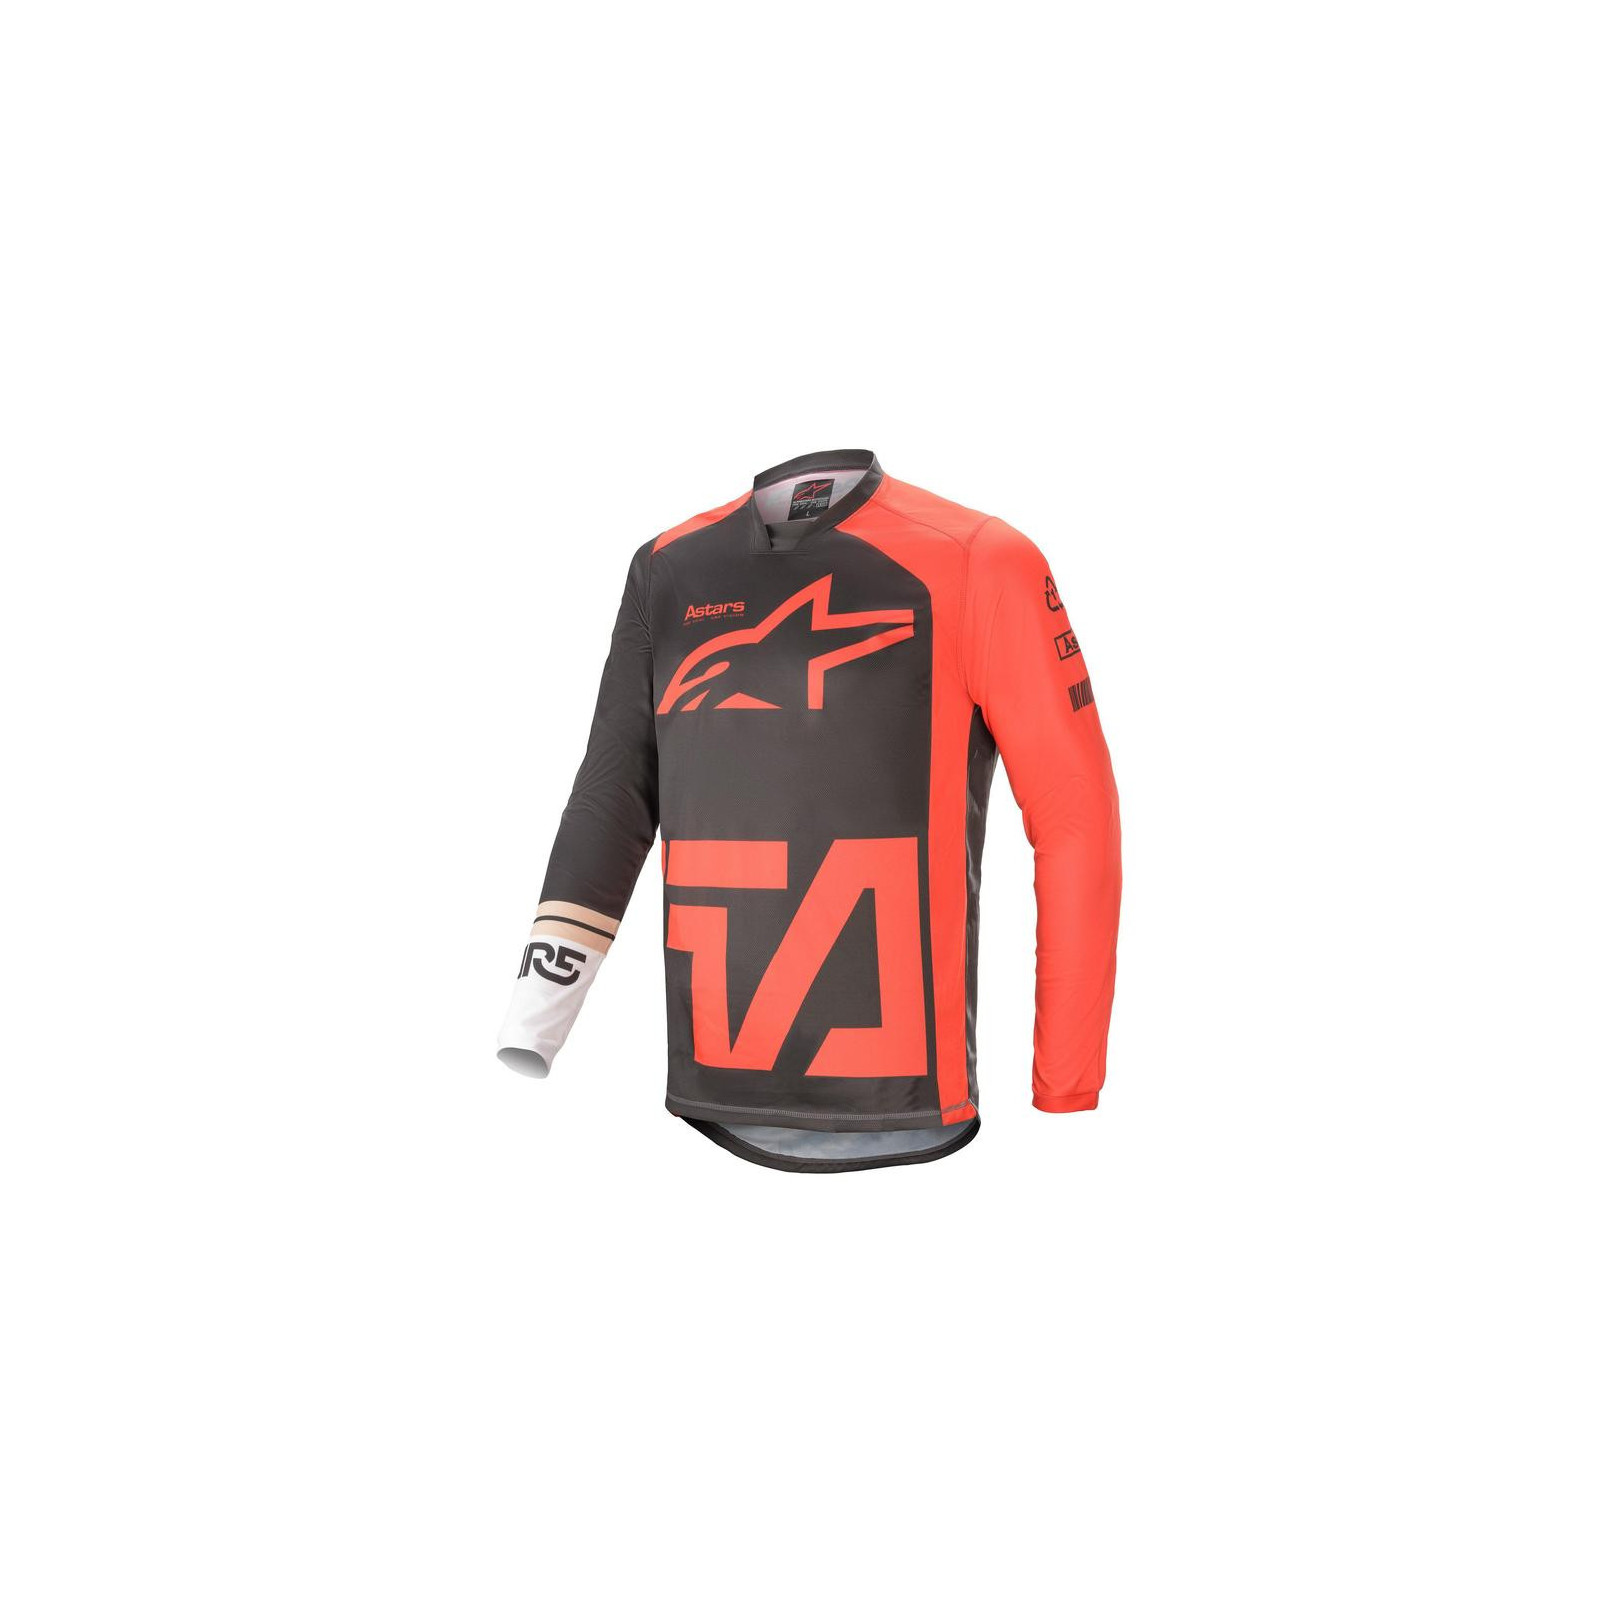 Maillot Alpinestars Racer Compass Jersey Anthracite, Rouge Fluo et Blanc